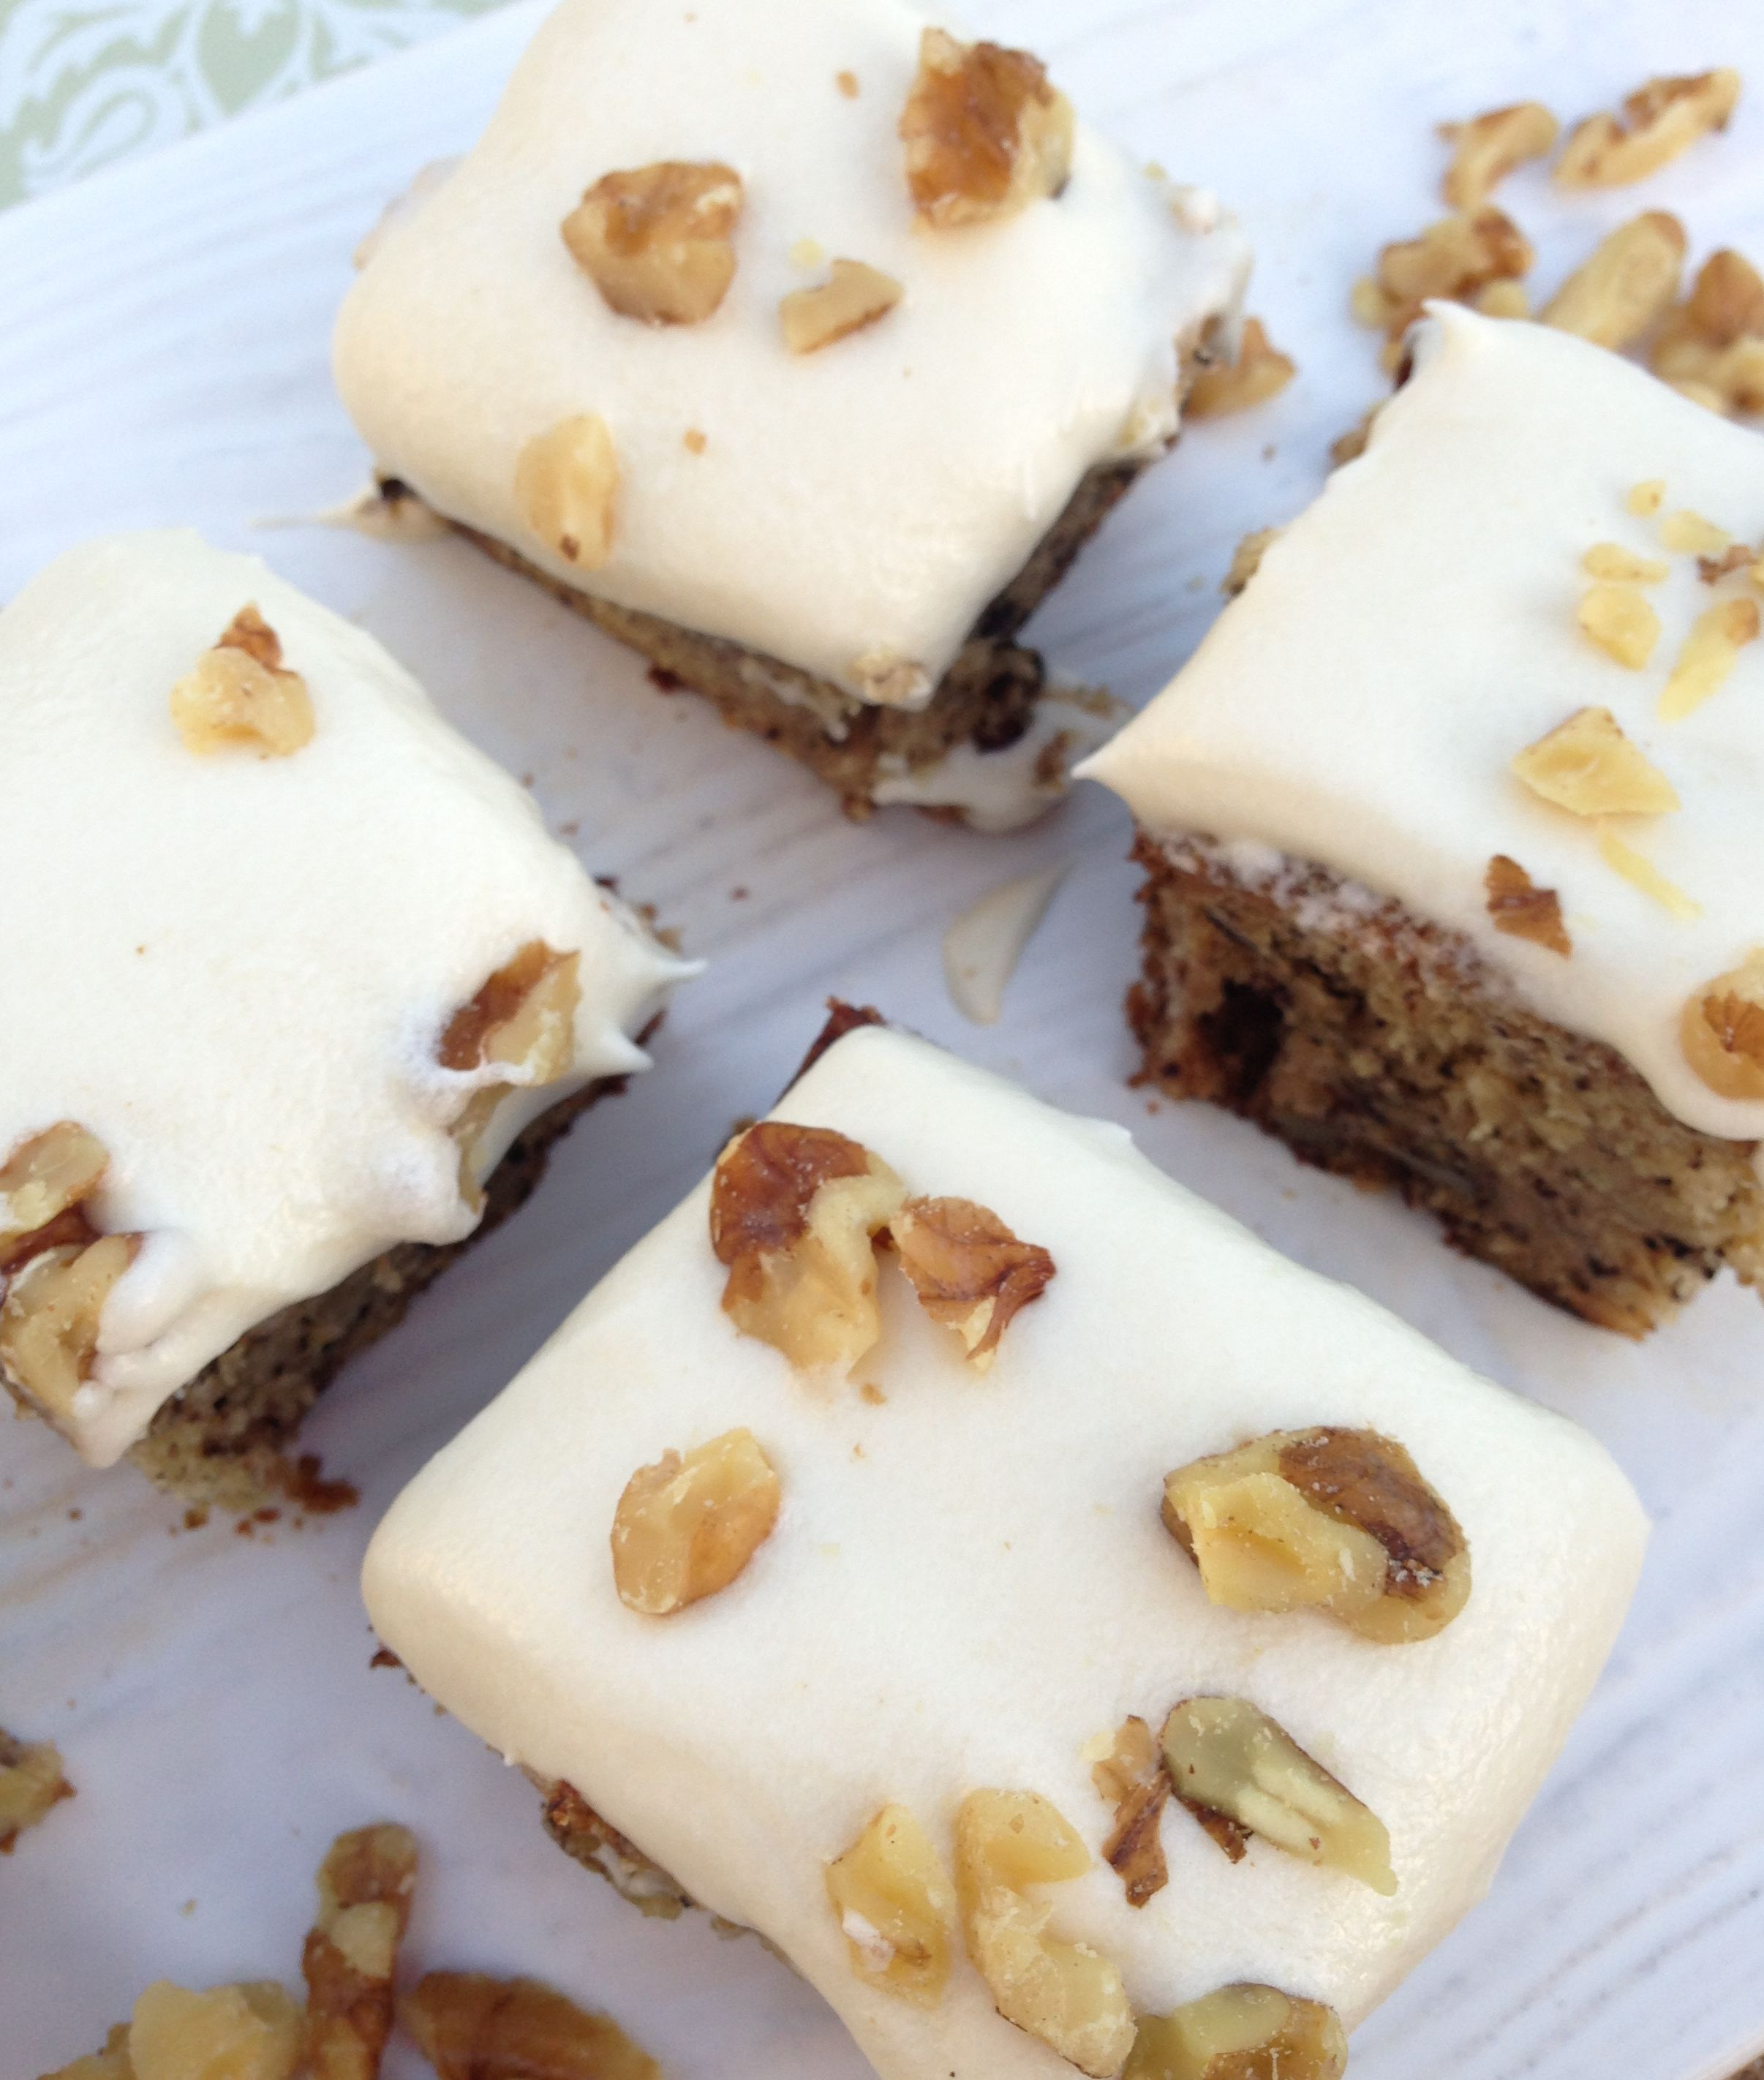 Banana Walnut Rum Cake with Cream Cheese Frosting